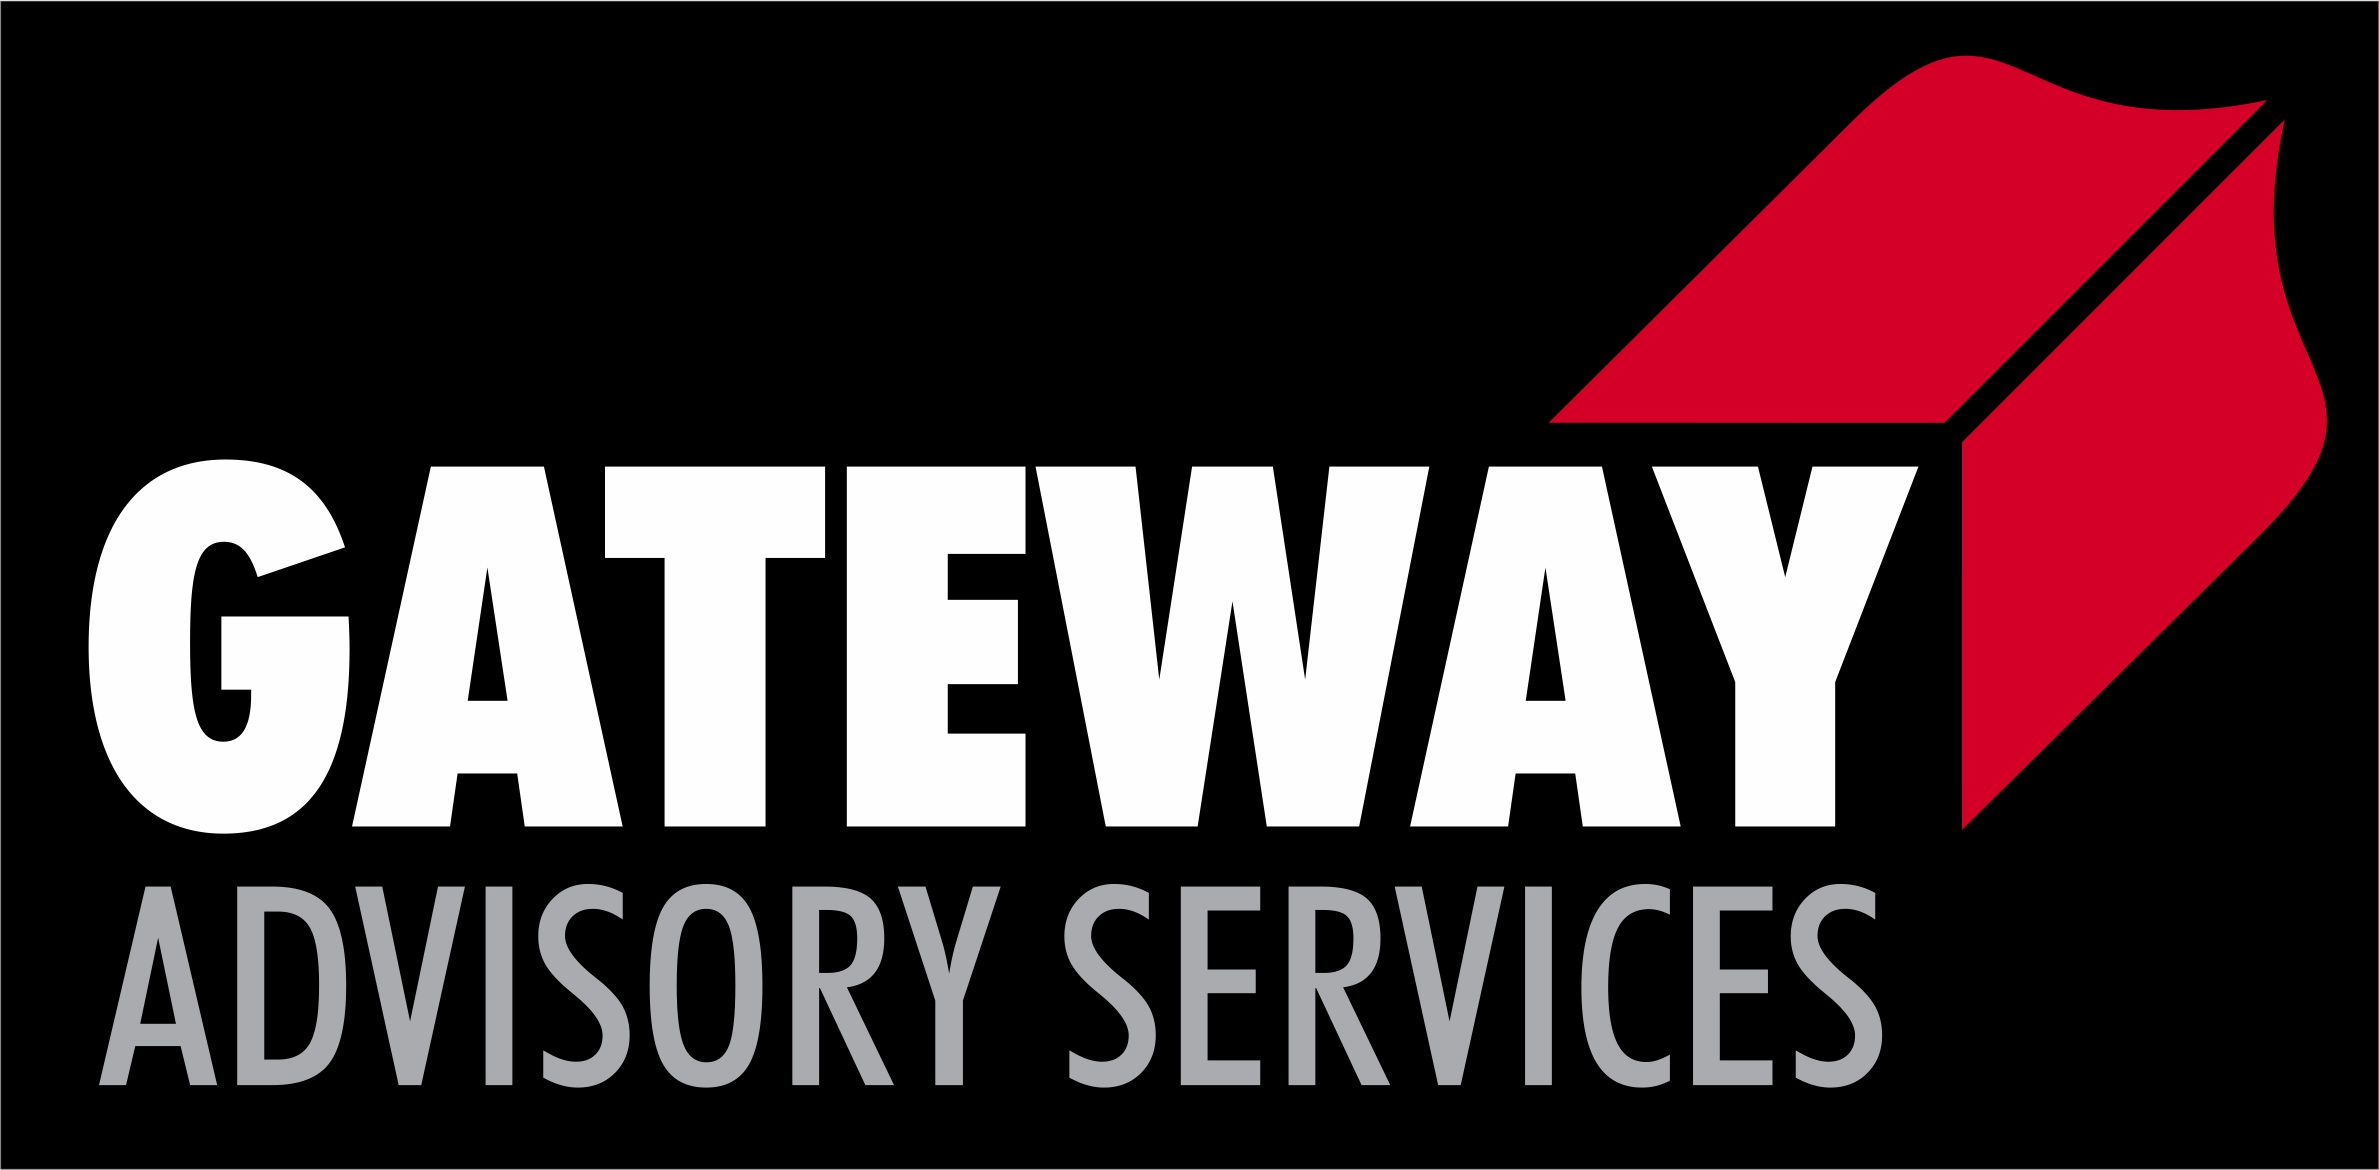 GATEWAY ADVISORY SERVICES (PTY) LTD